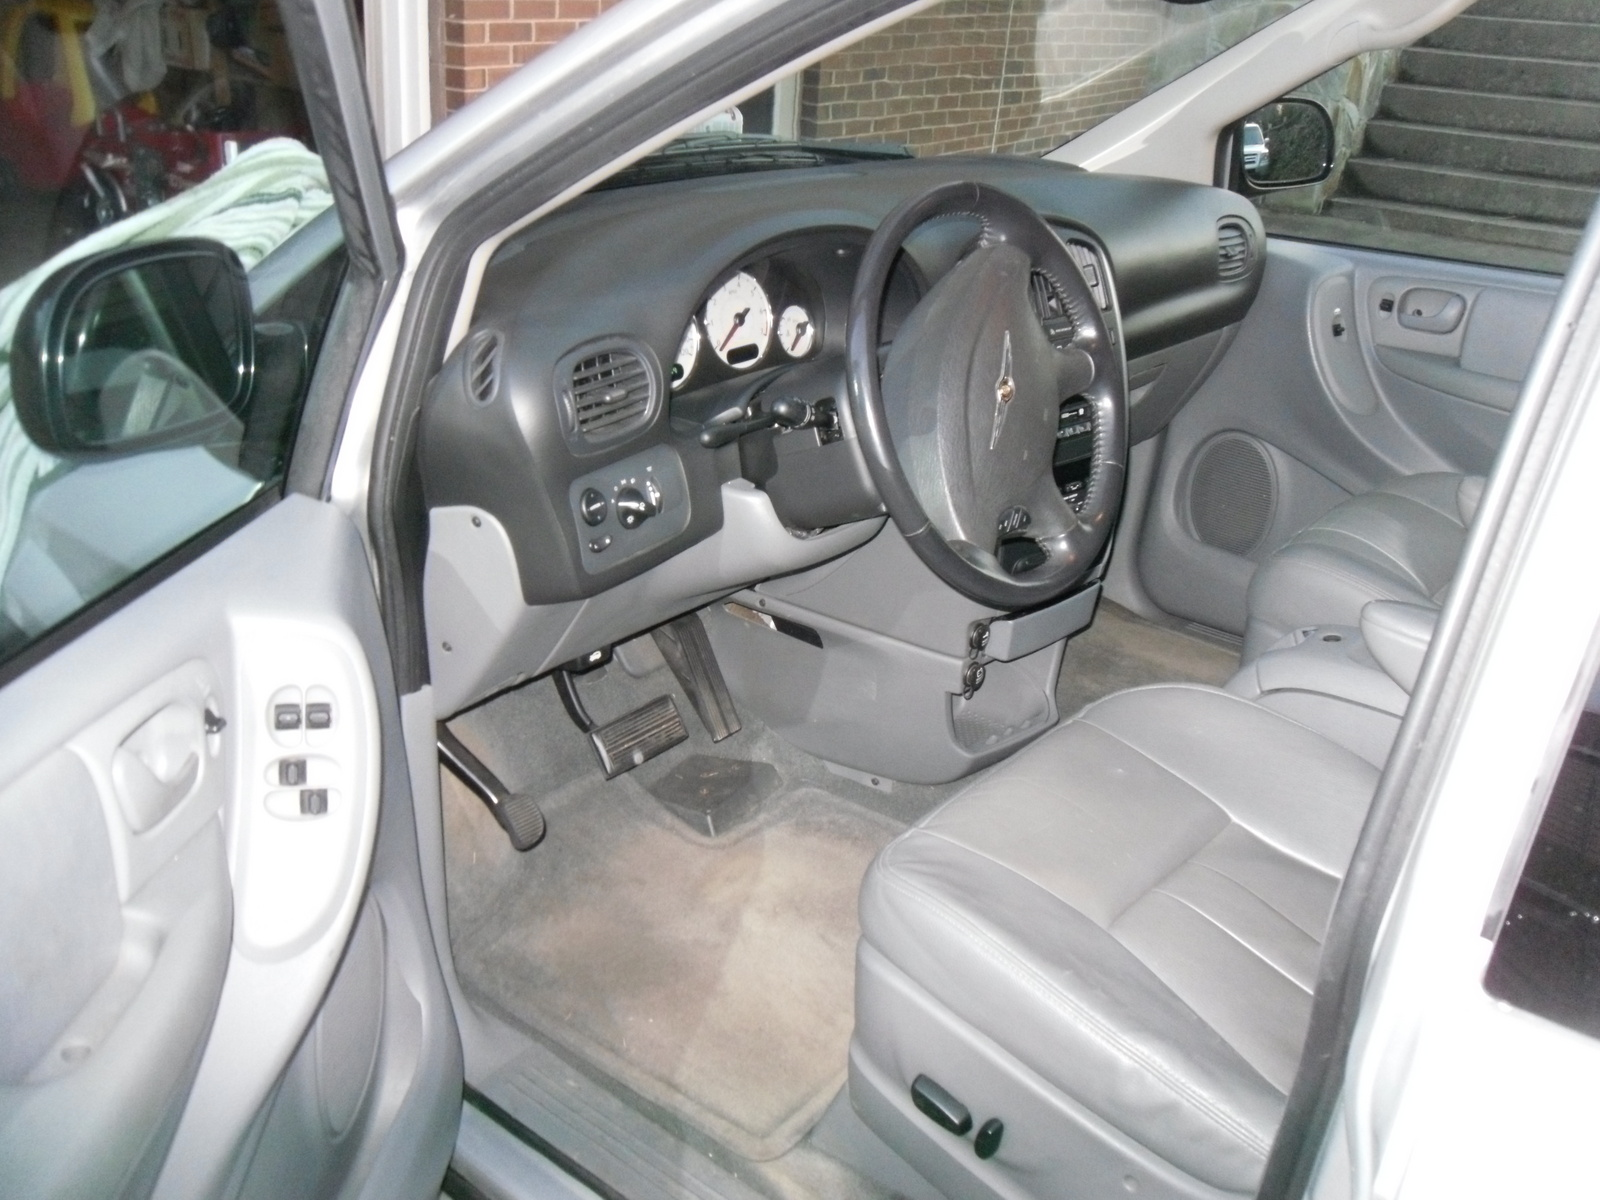 2005 chrysler town country interior pictures cargurus. Black Bedroom Furniture Sets. Home Design Ideas